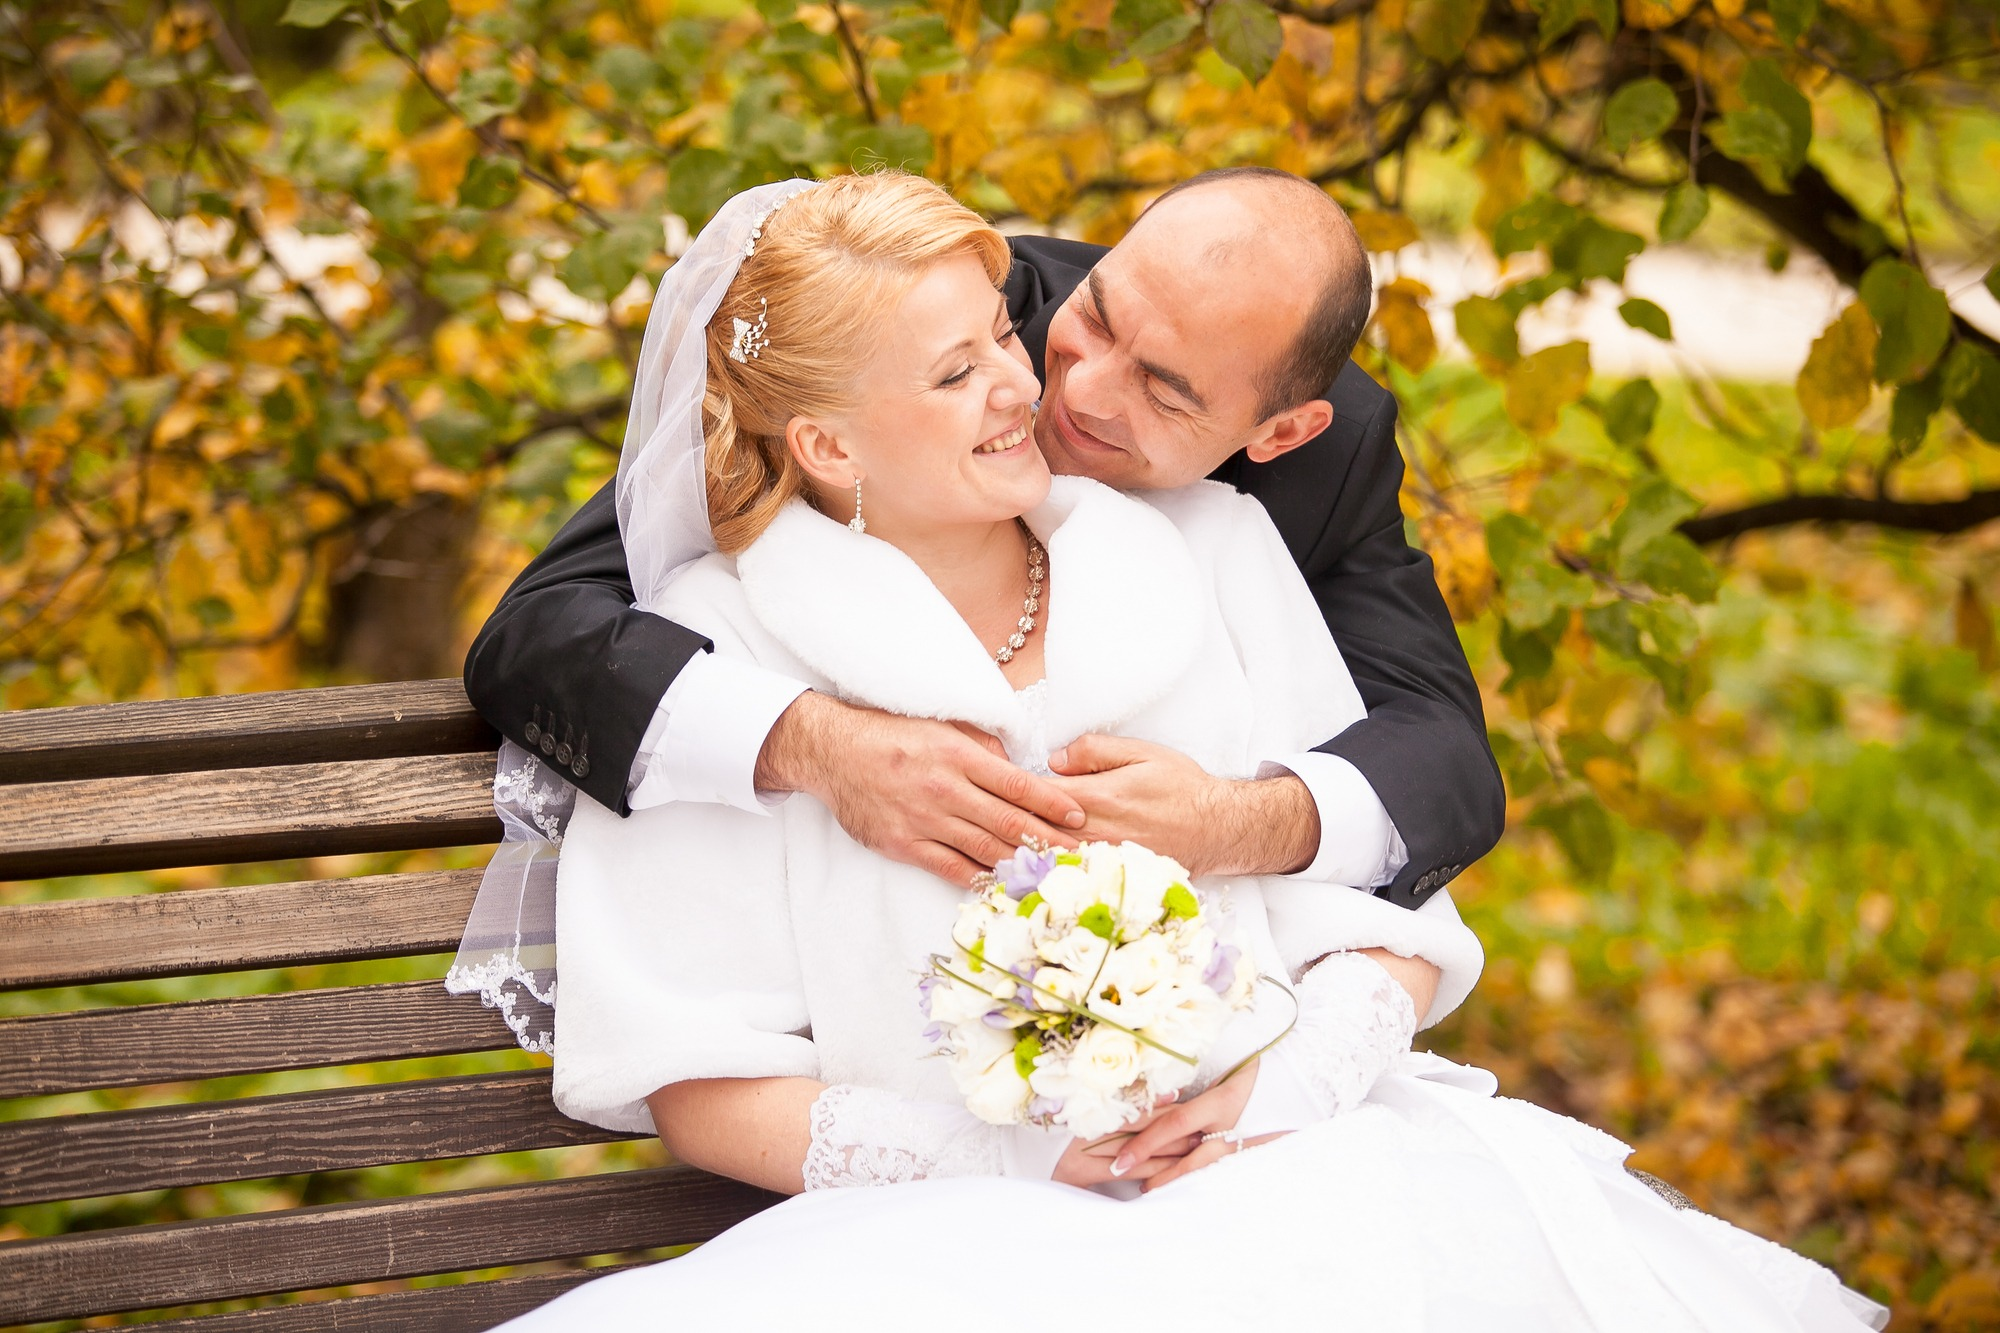 Middle aged bride and groom